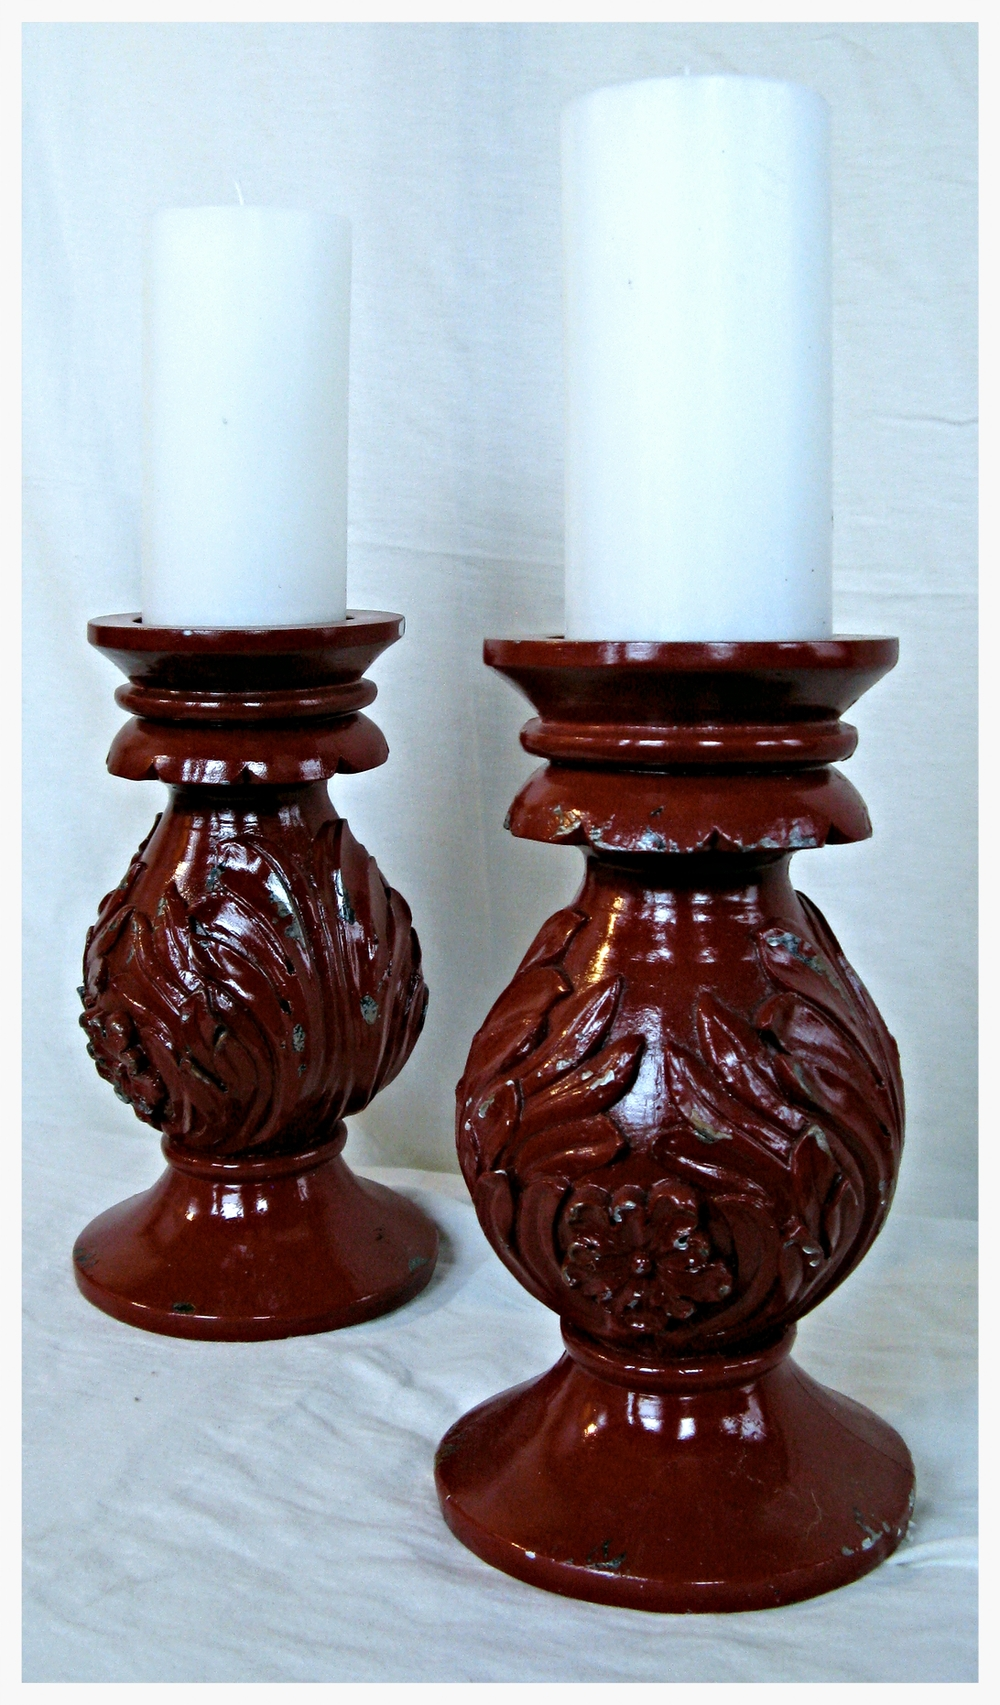 Crimson Candlesticks.jpg